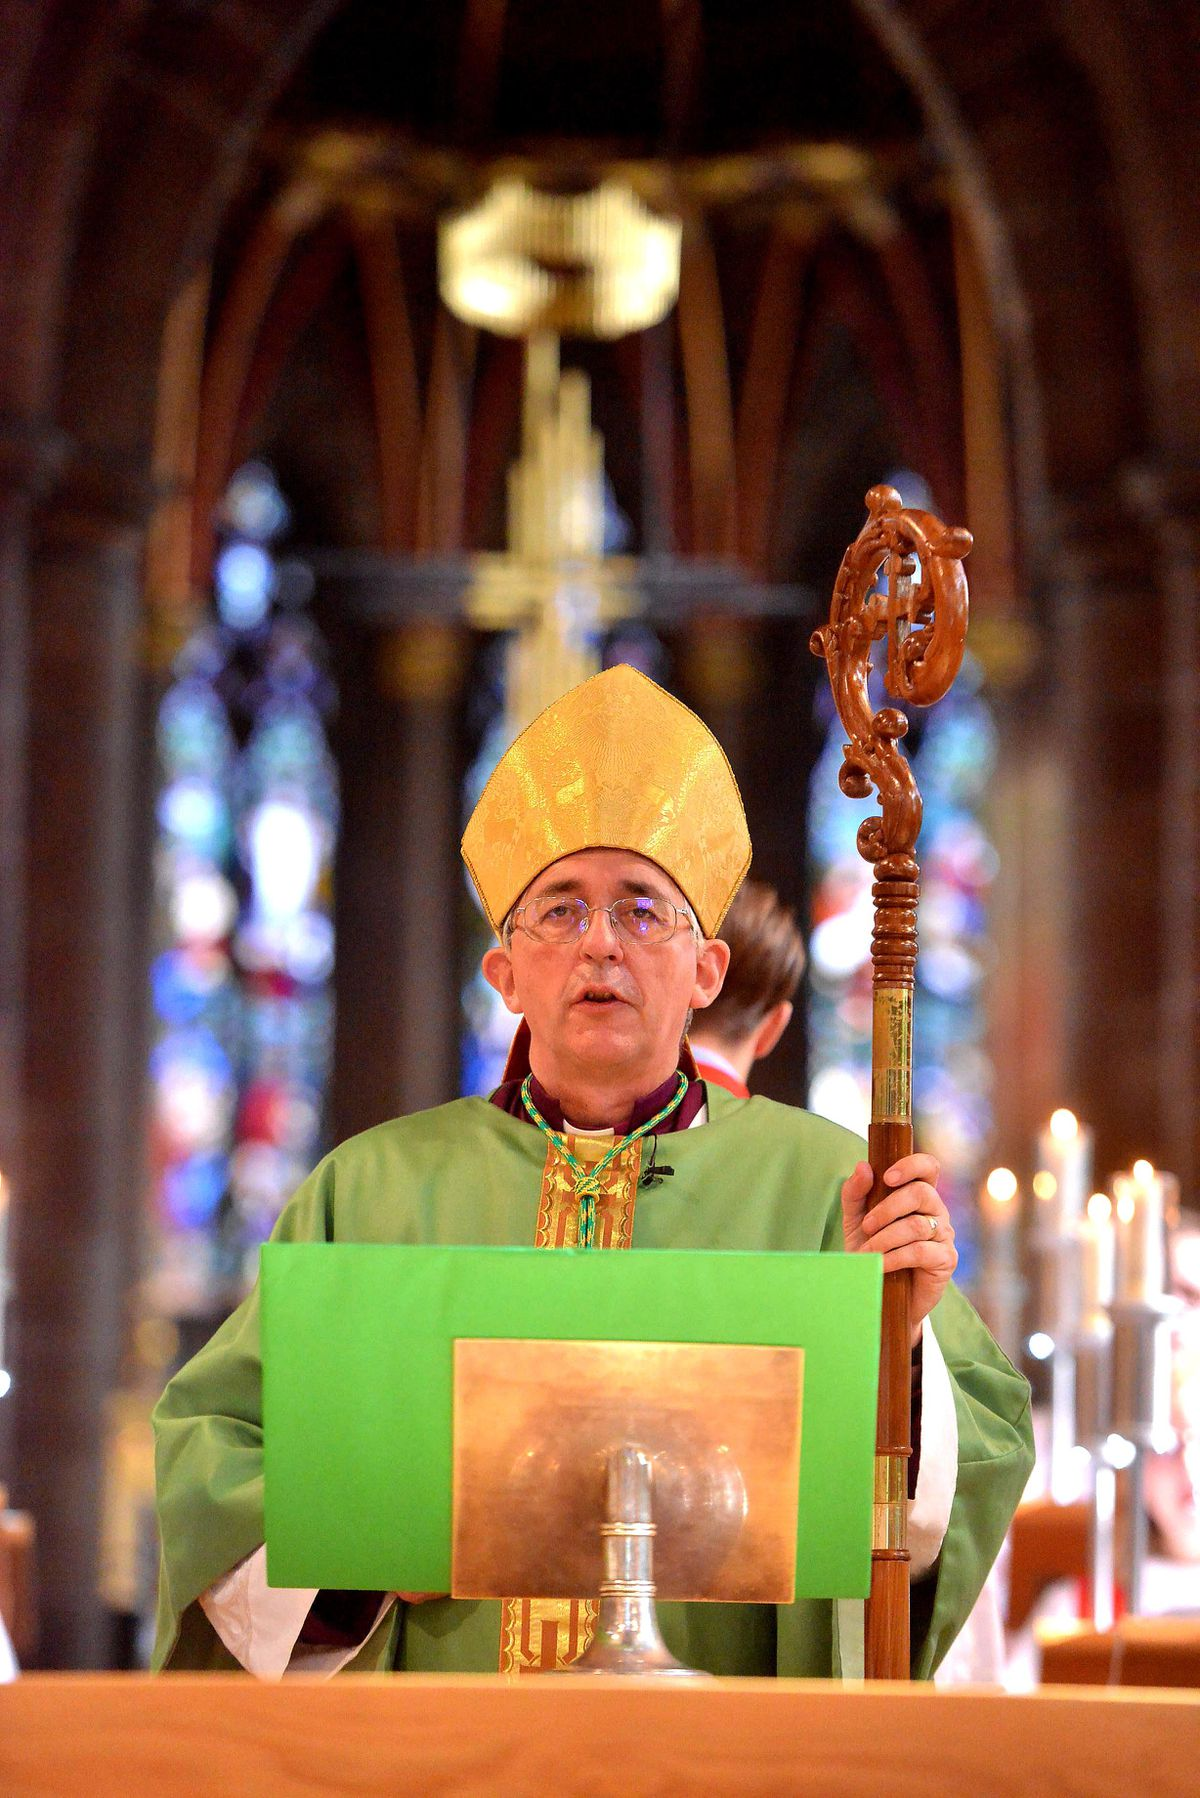 The Bishop of Lichfield Dr Michael Ipgrave reflected on the struggles of the last year and its relationship to Easter